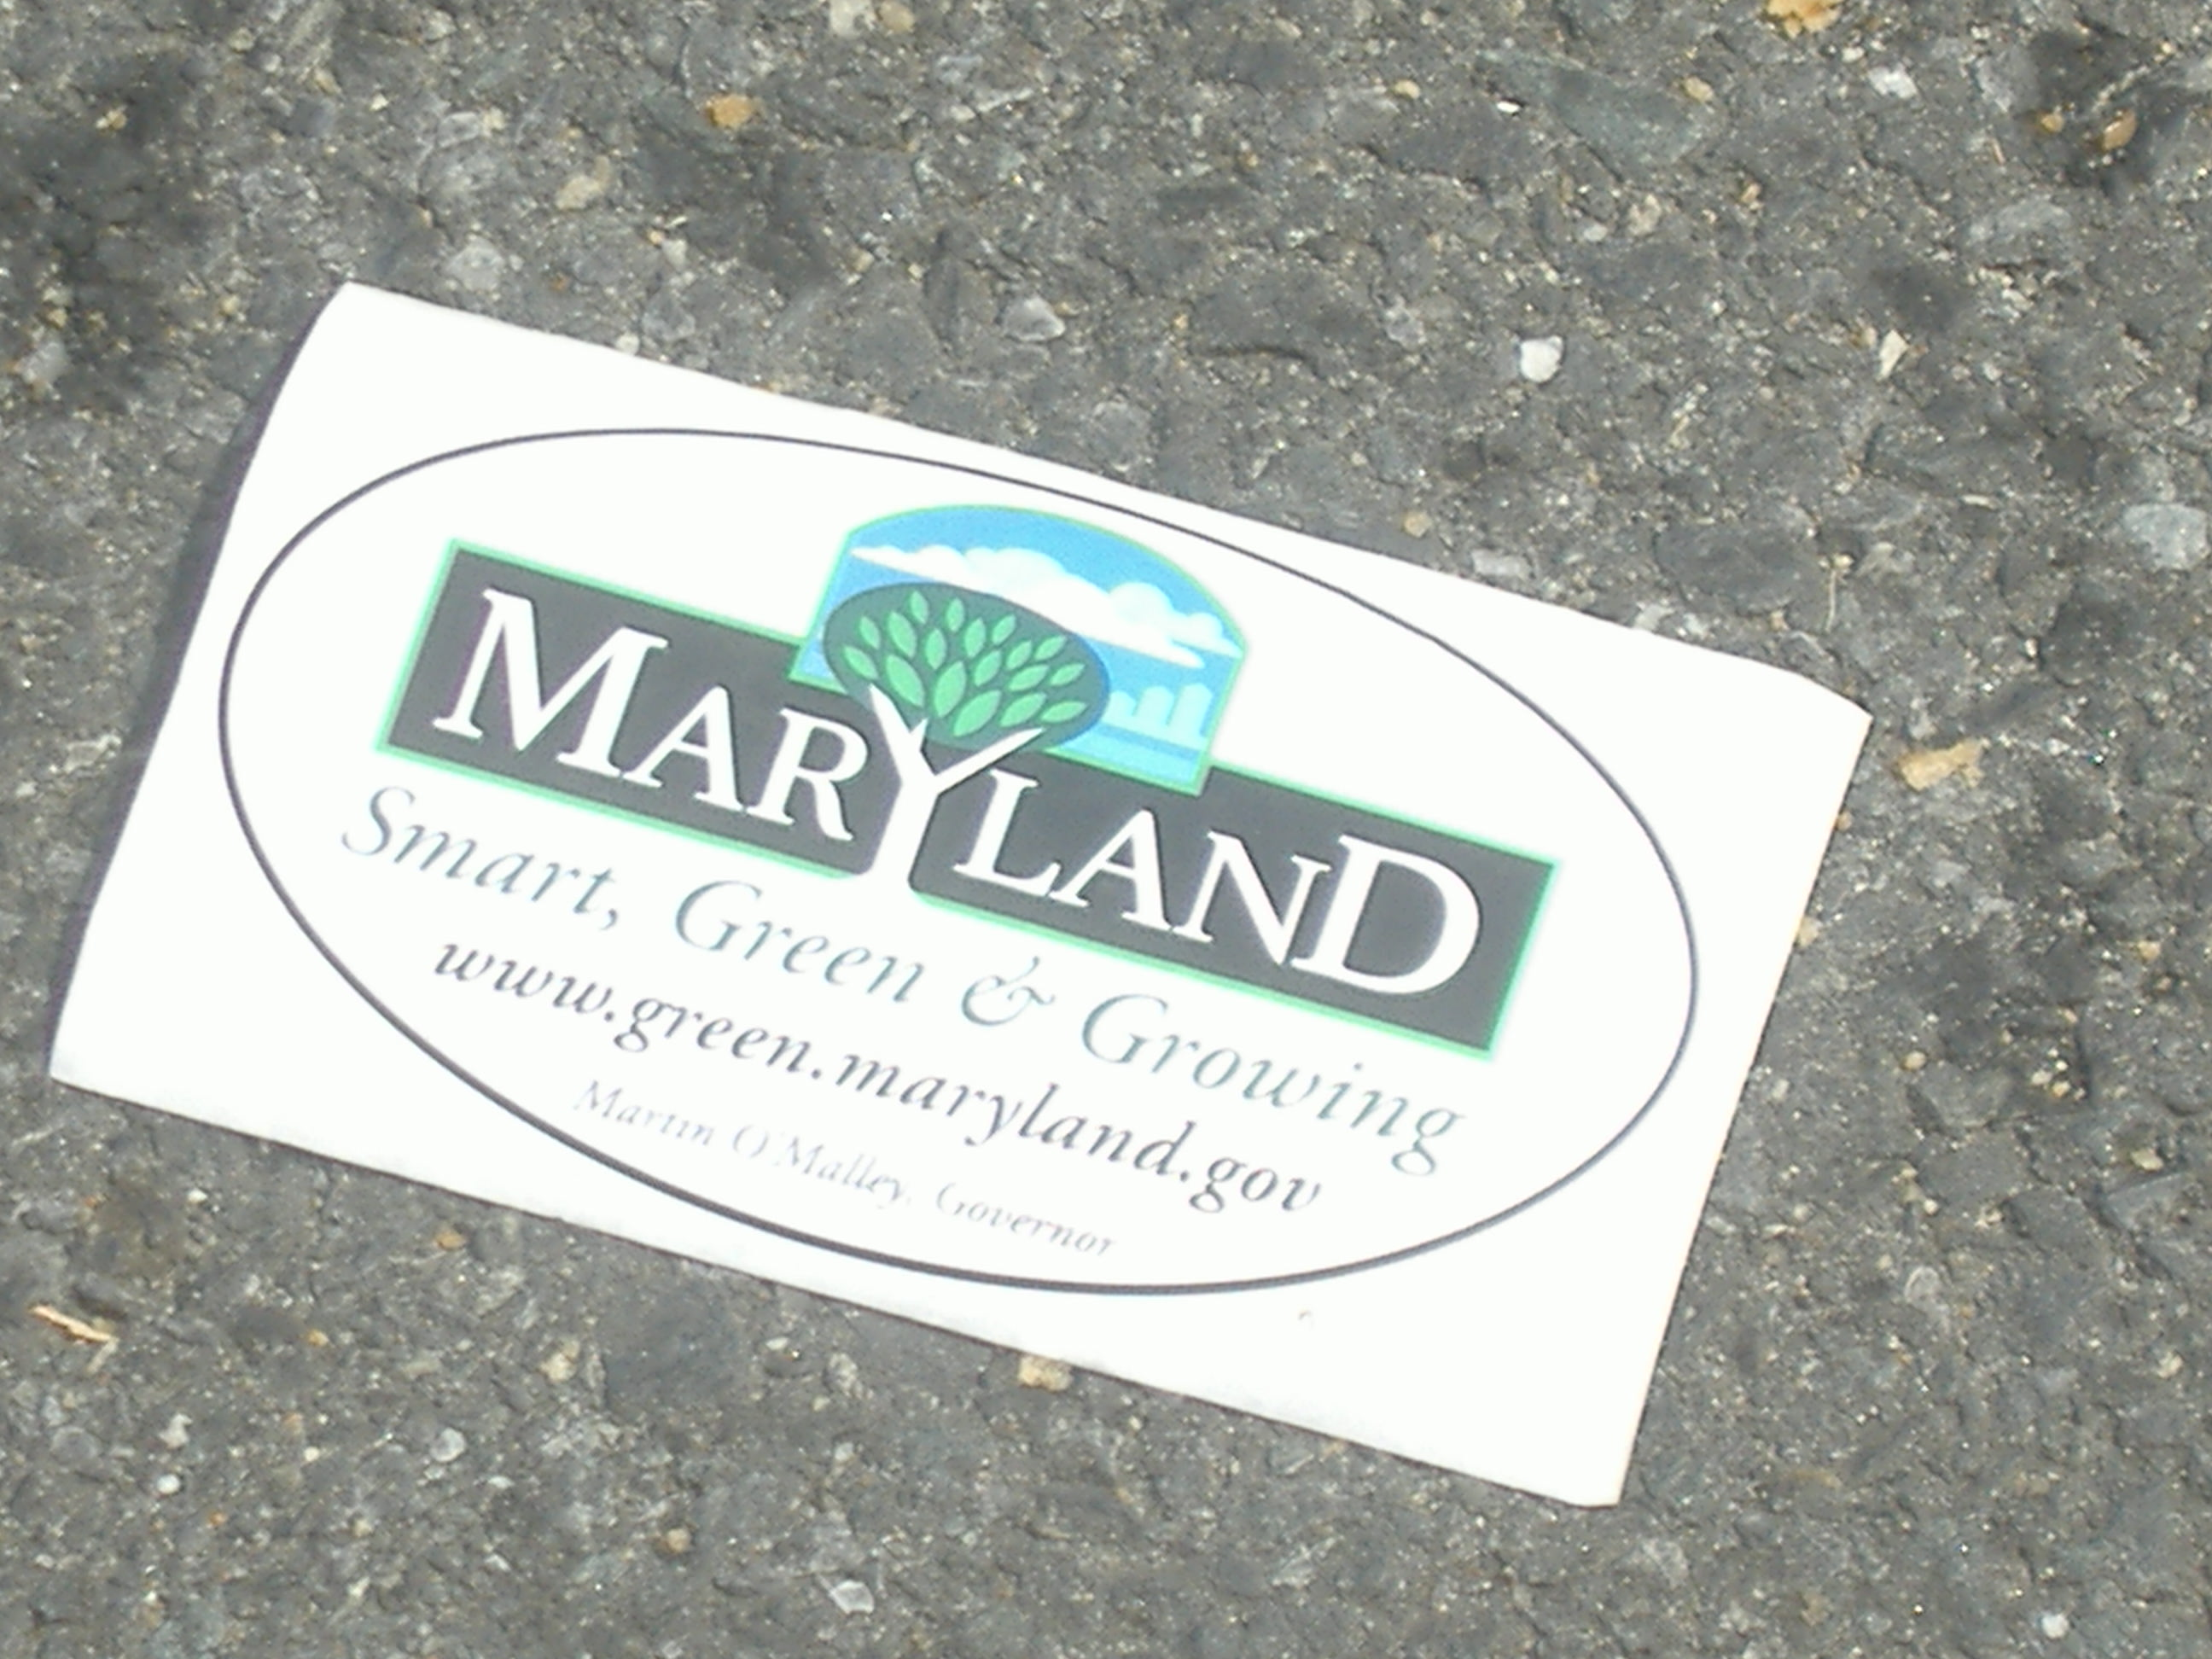 There were a few of these stickers lying around Tawes as well. I haven't seen too much that was smart about the O'Malley Administration's push for green, because the only things which seem to be growing in Maryland are the tax burden, unemployment rate, and size of government.